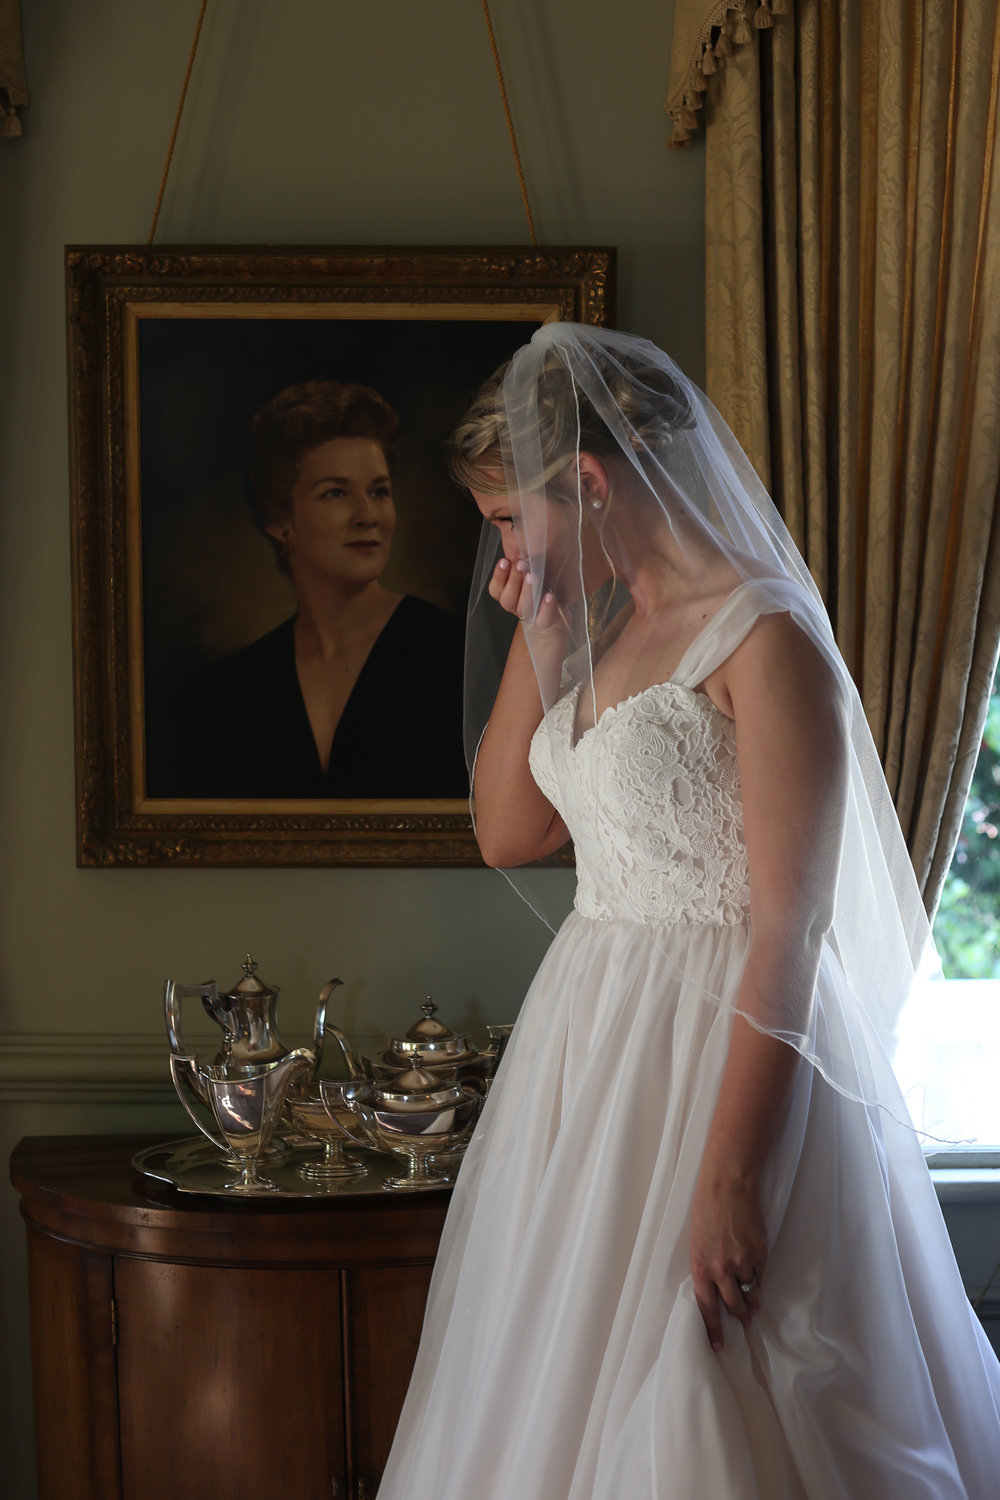 Just before walking down the aisle, Elizabeth stopped and took a moment to remember her Grandmother with whom she had an amazing relationship and bond.